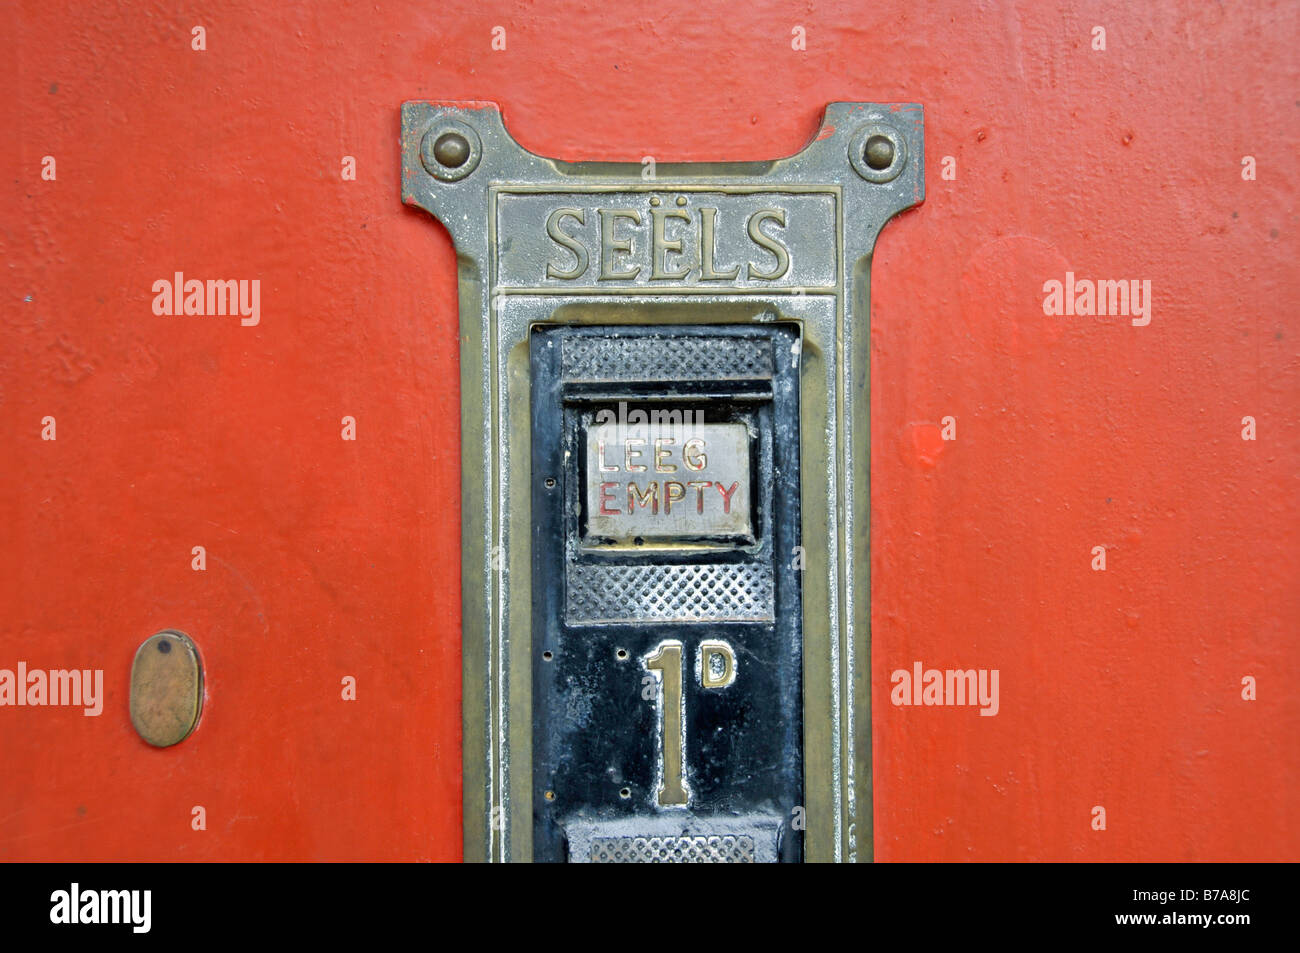 Old stamp vending machine, in Pilgrim's Rest, South Africa - Stock Image